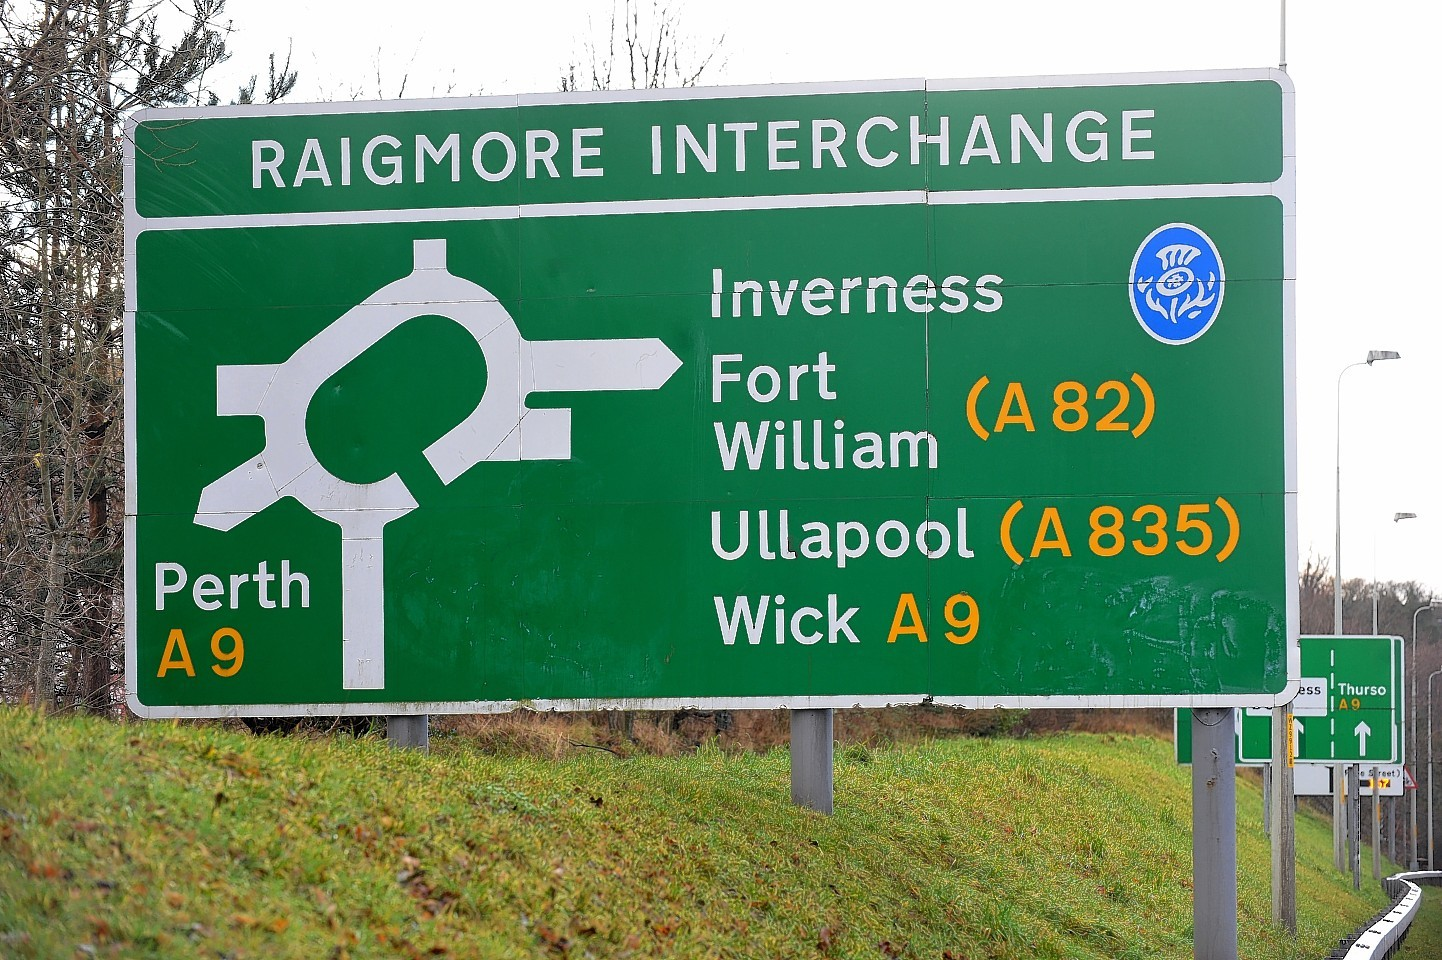 The accident happened on the Raigmore Interchange